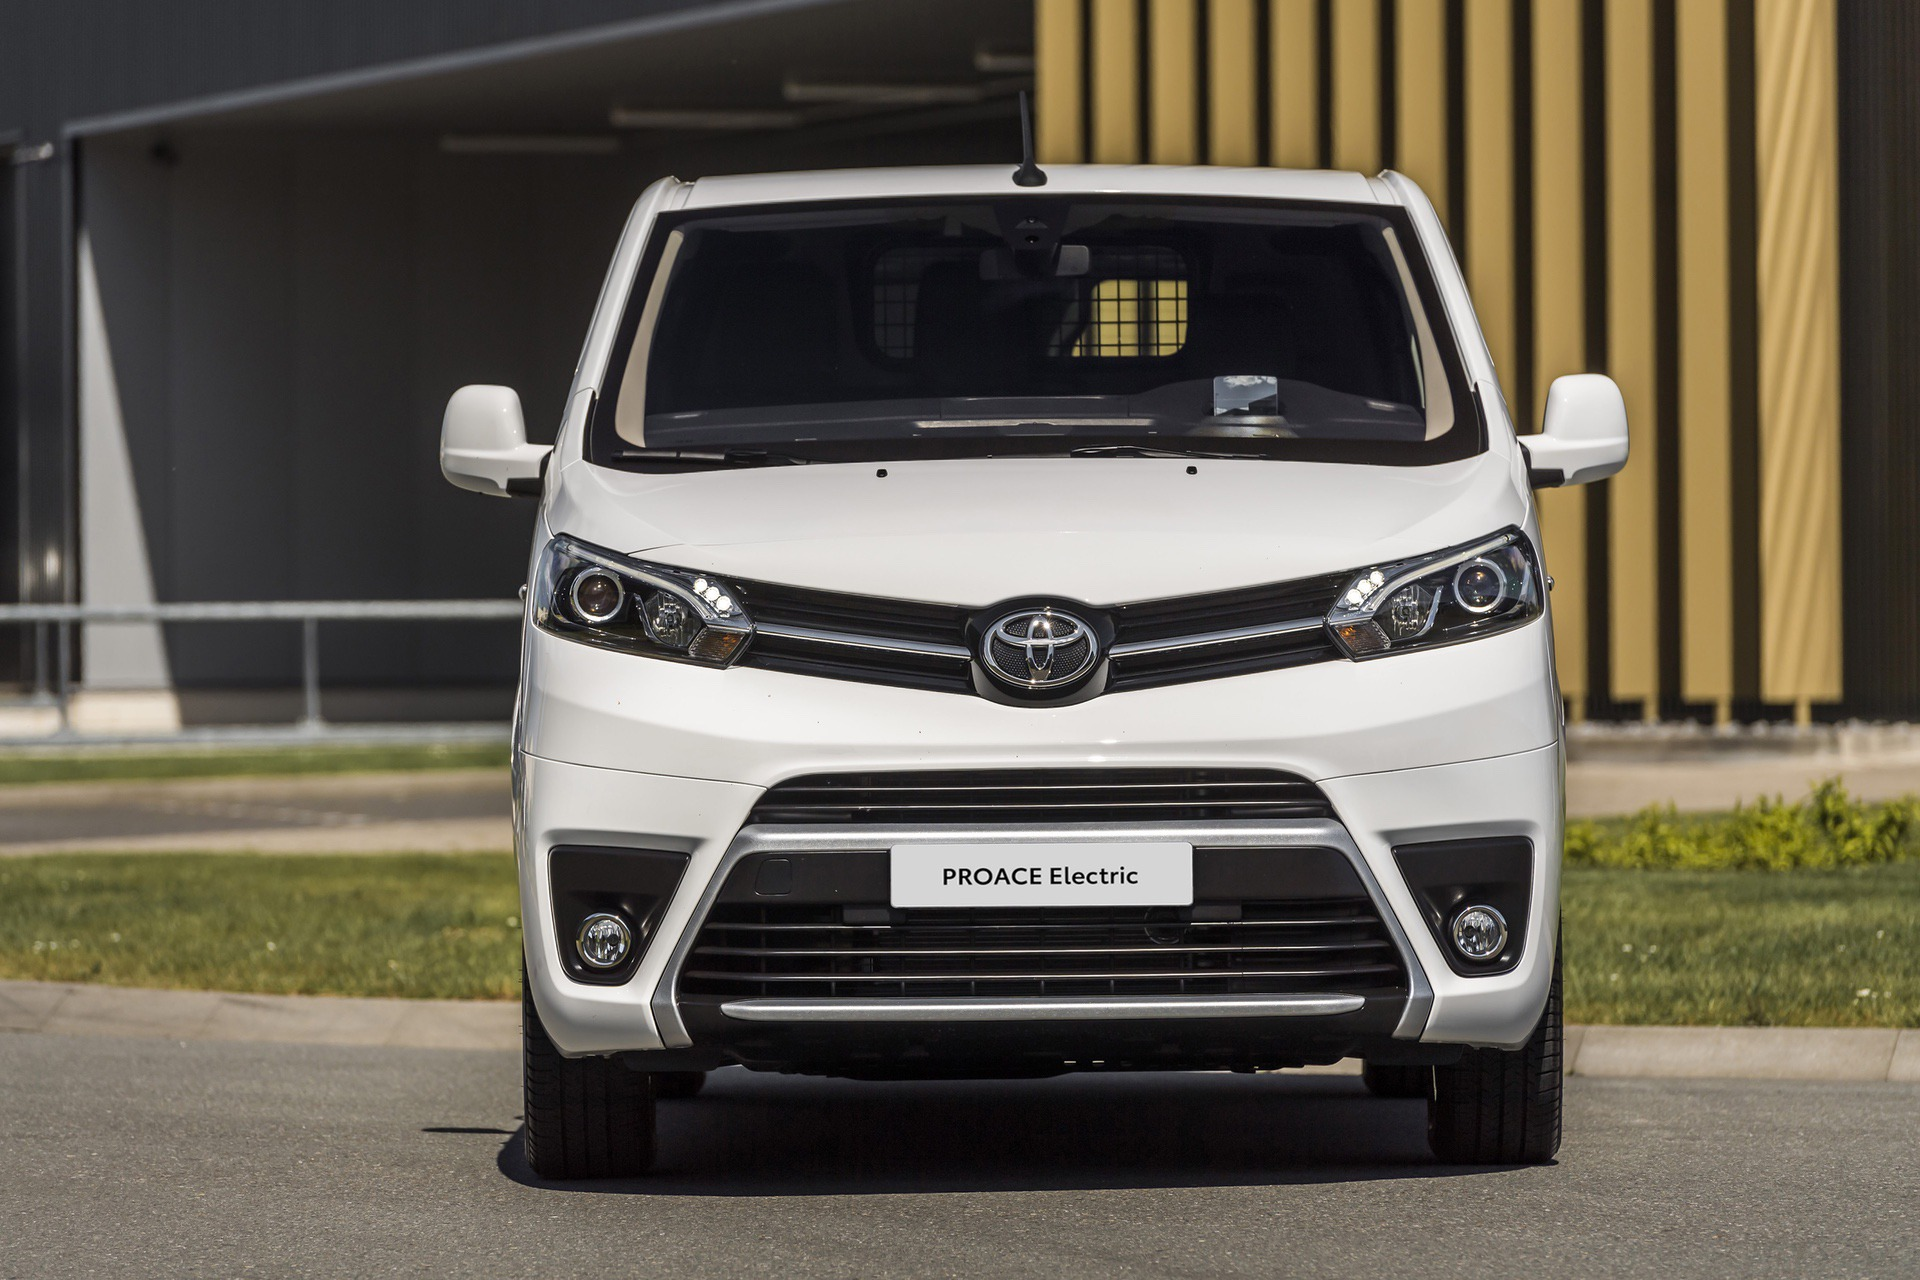 Toyota_Proace_electric_0011